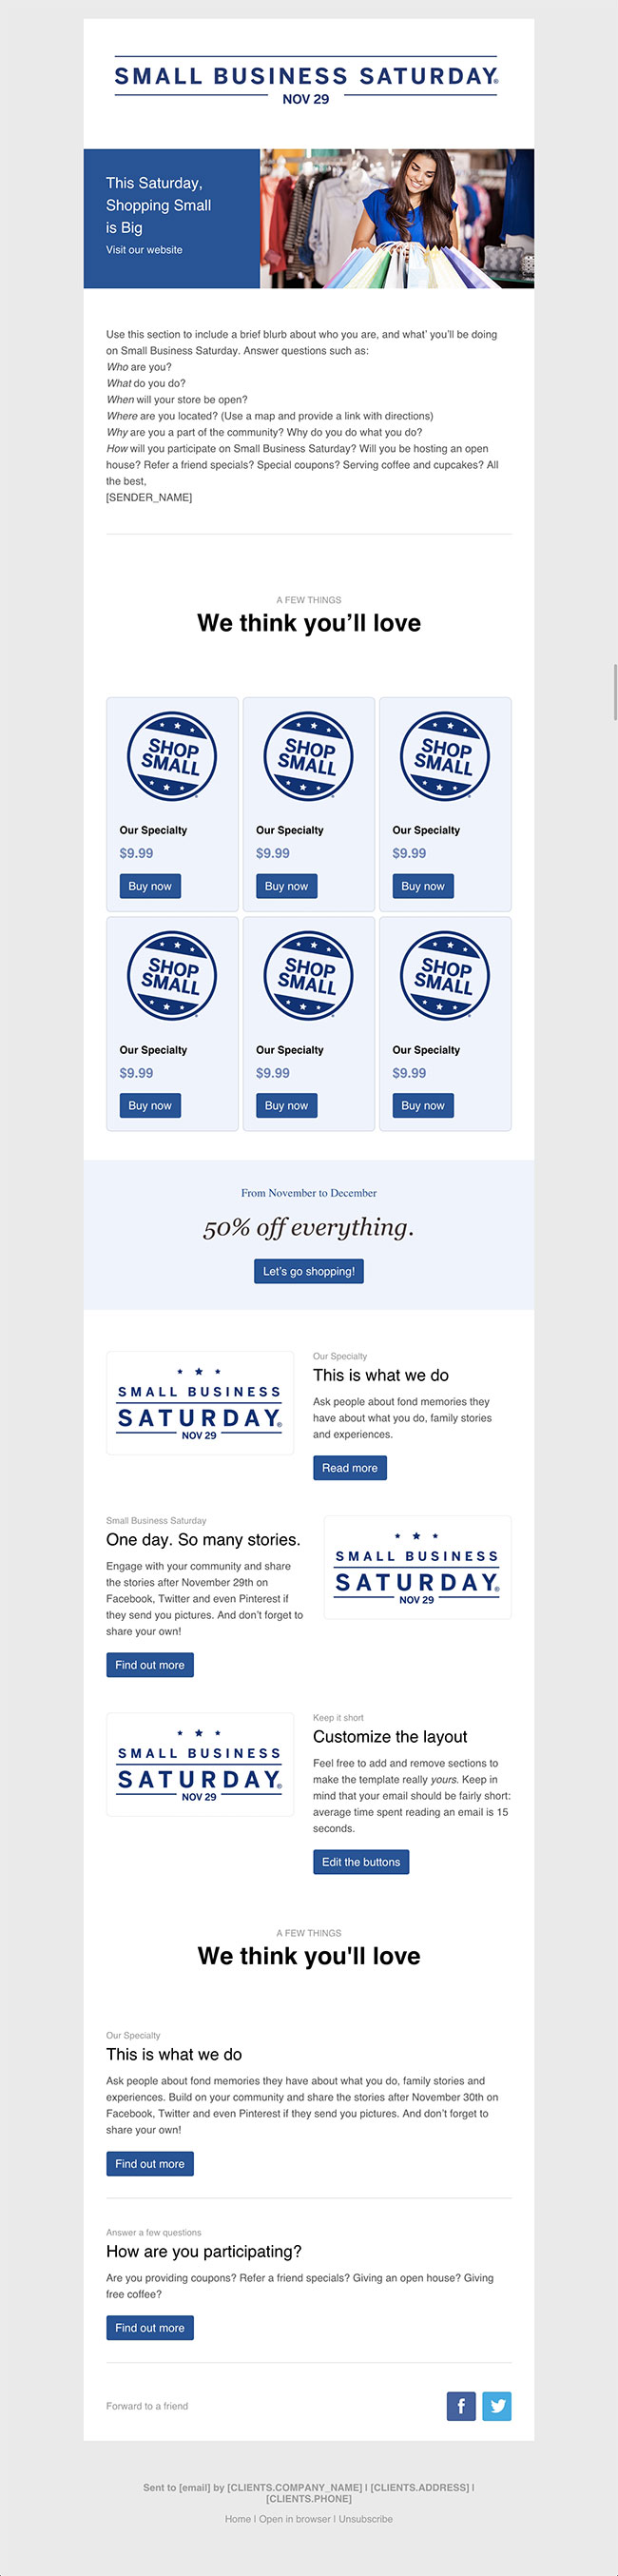 small business saturday blue email eemplate